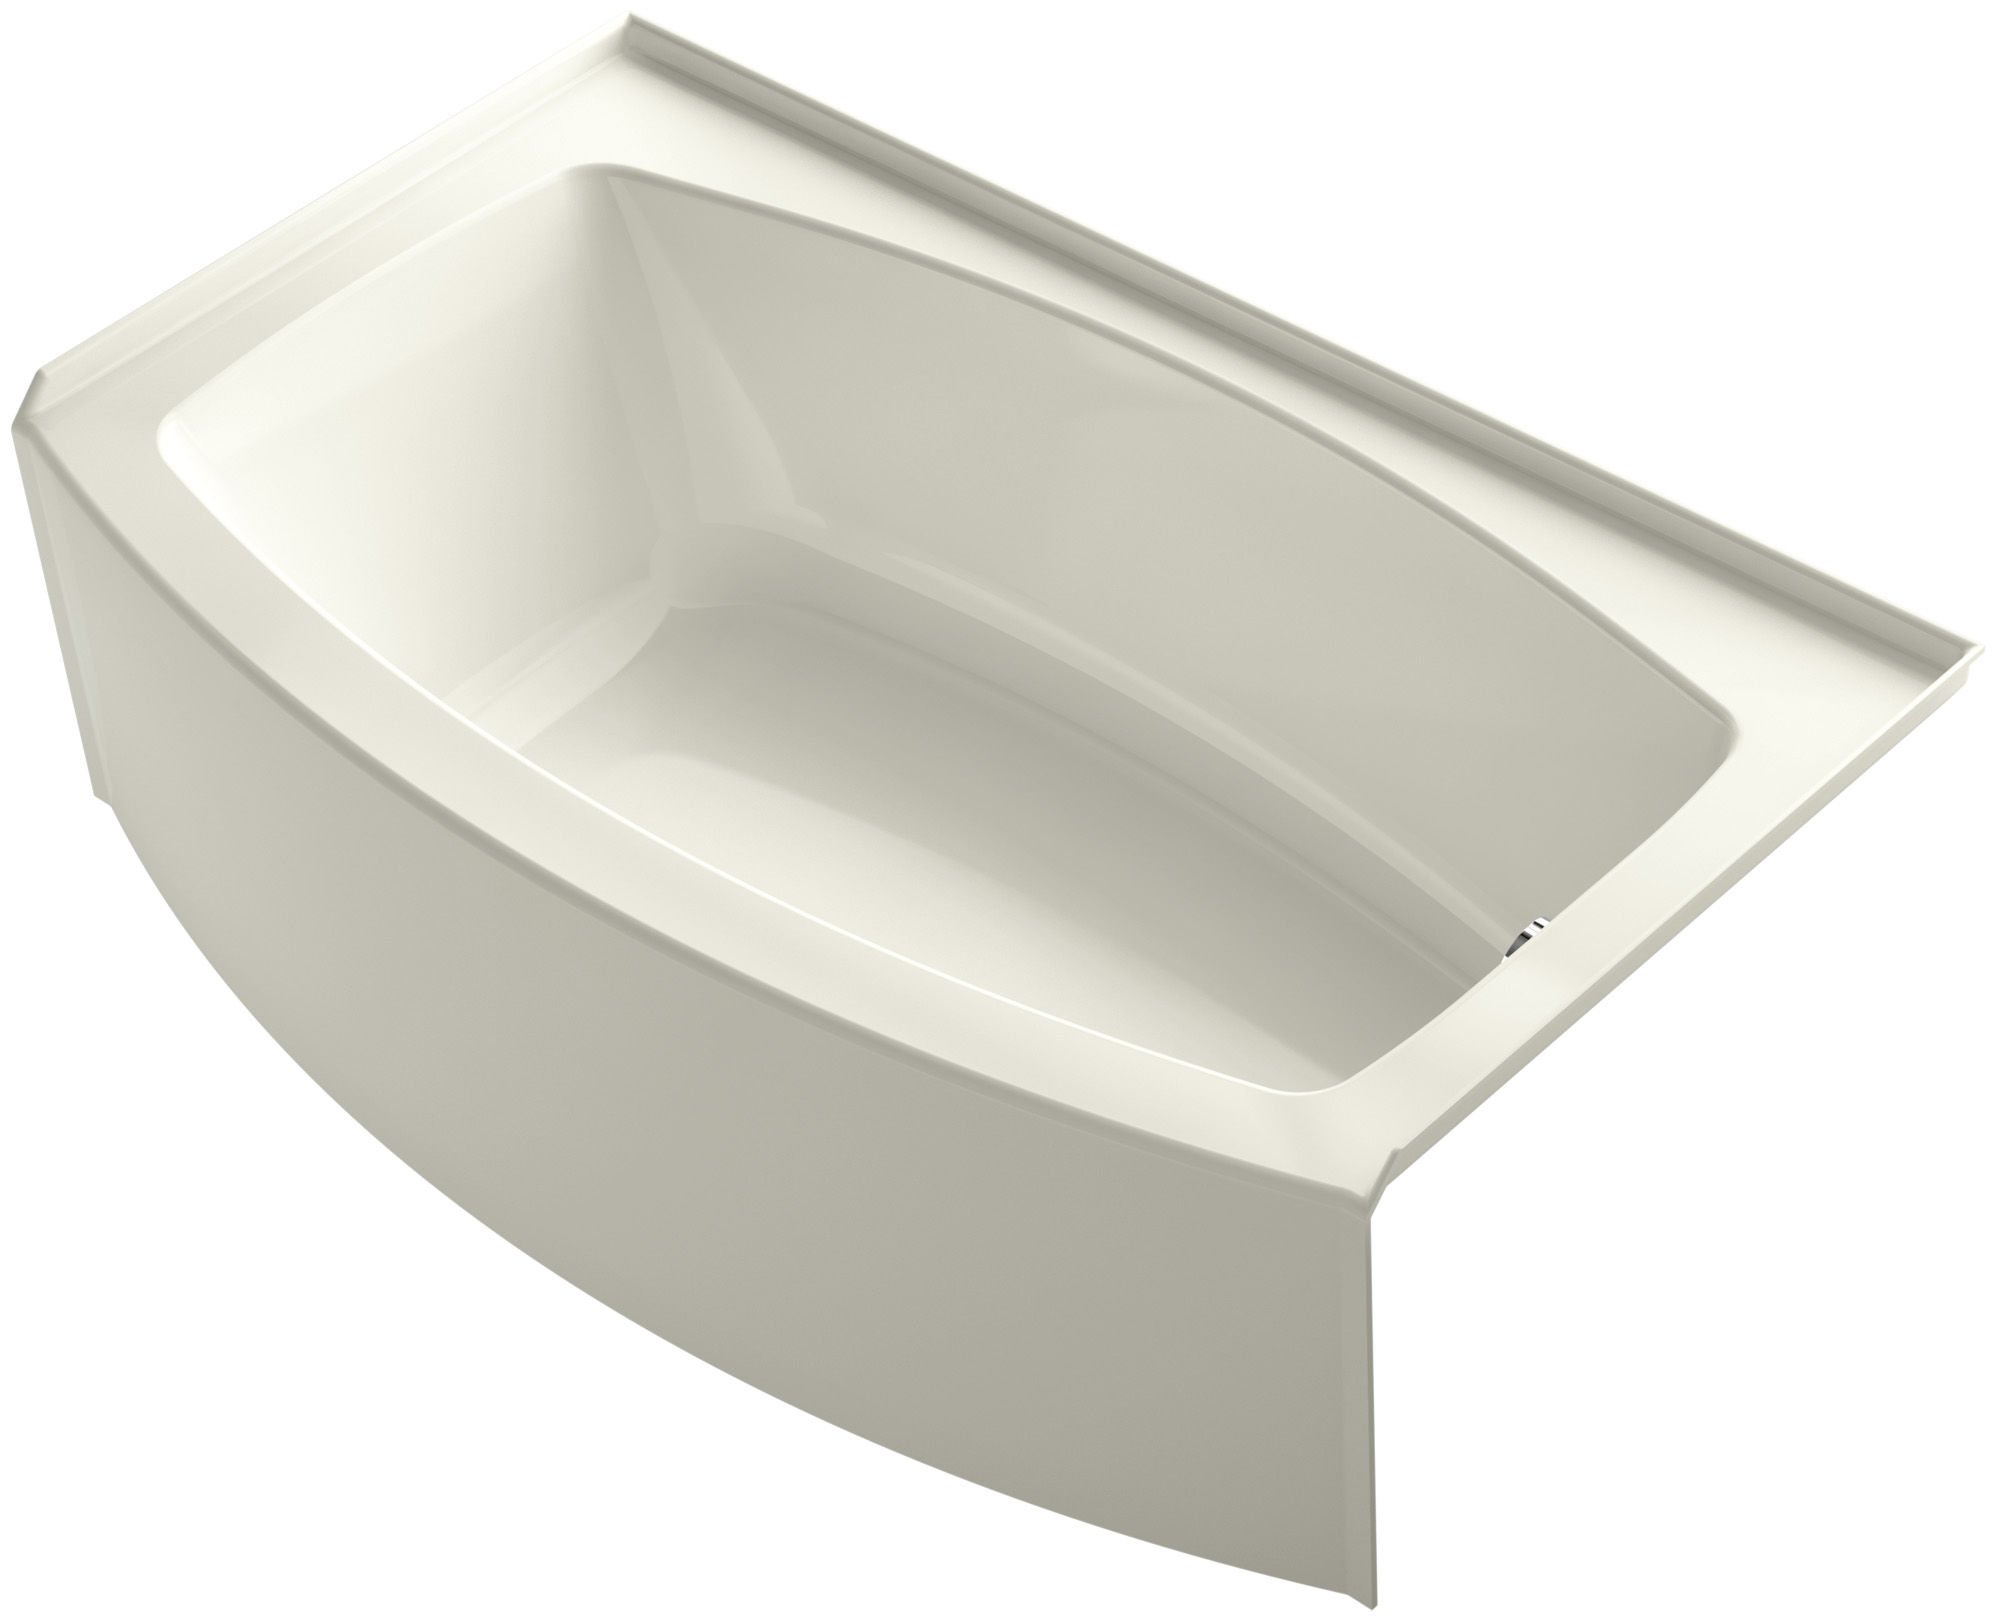 Kohler K 1118 Ra 47 Almond 60 Three Wall Alcove Curved A Soaking Tub With Right Hand Drain Faucet